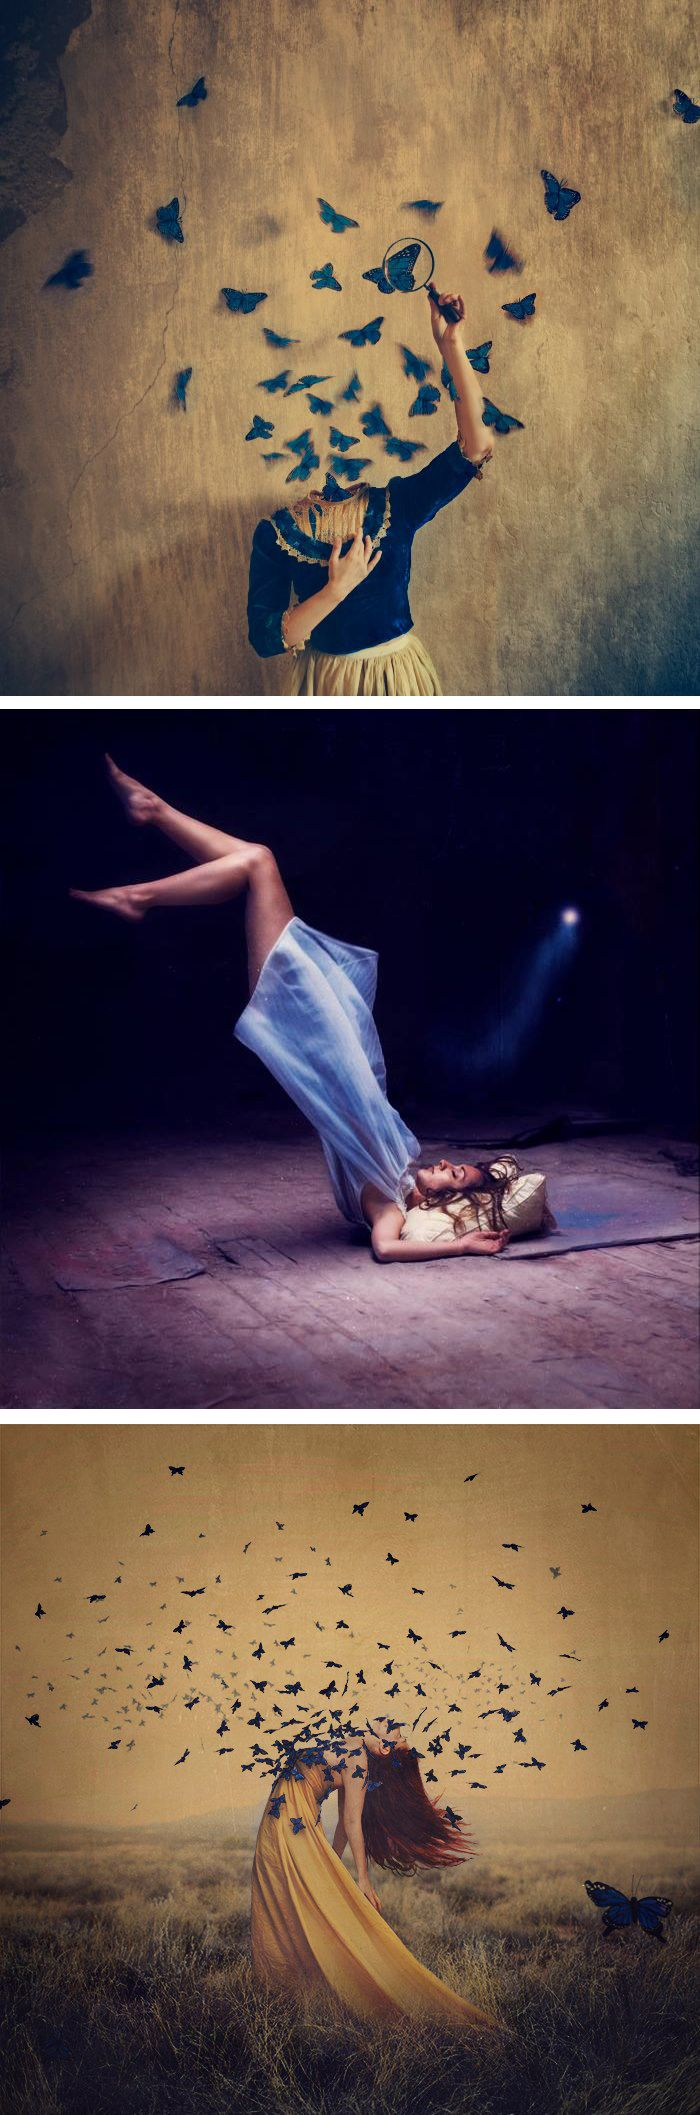 Fine art photography by Brooke Shaden // surreal photography